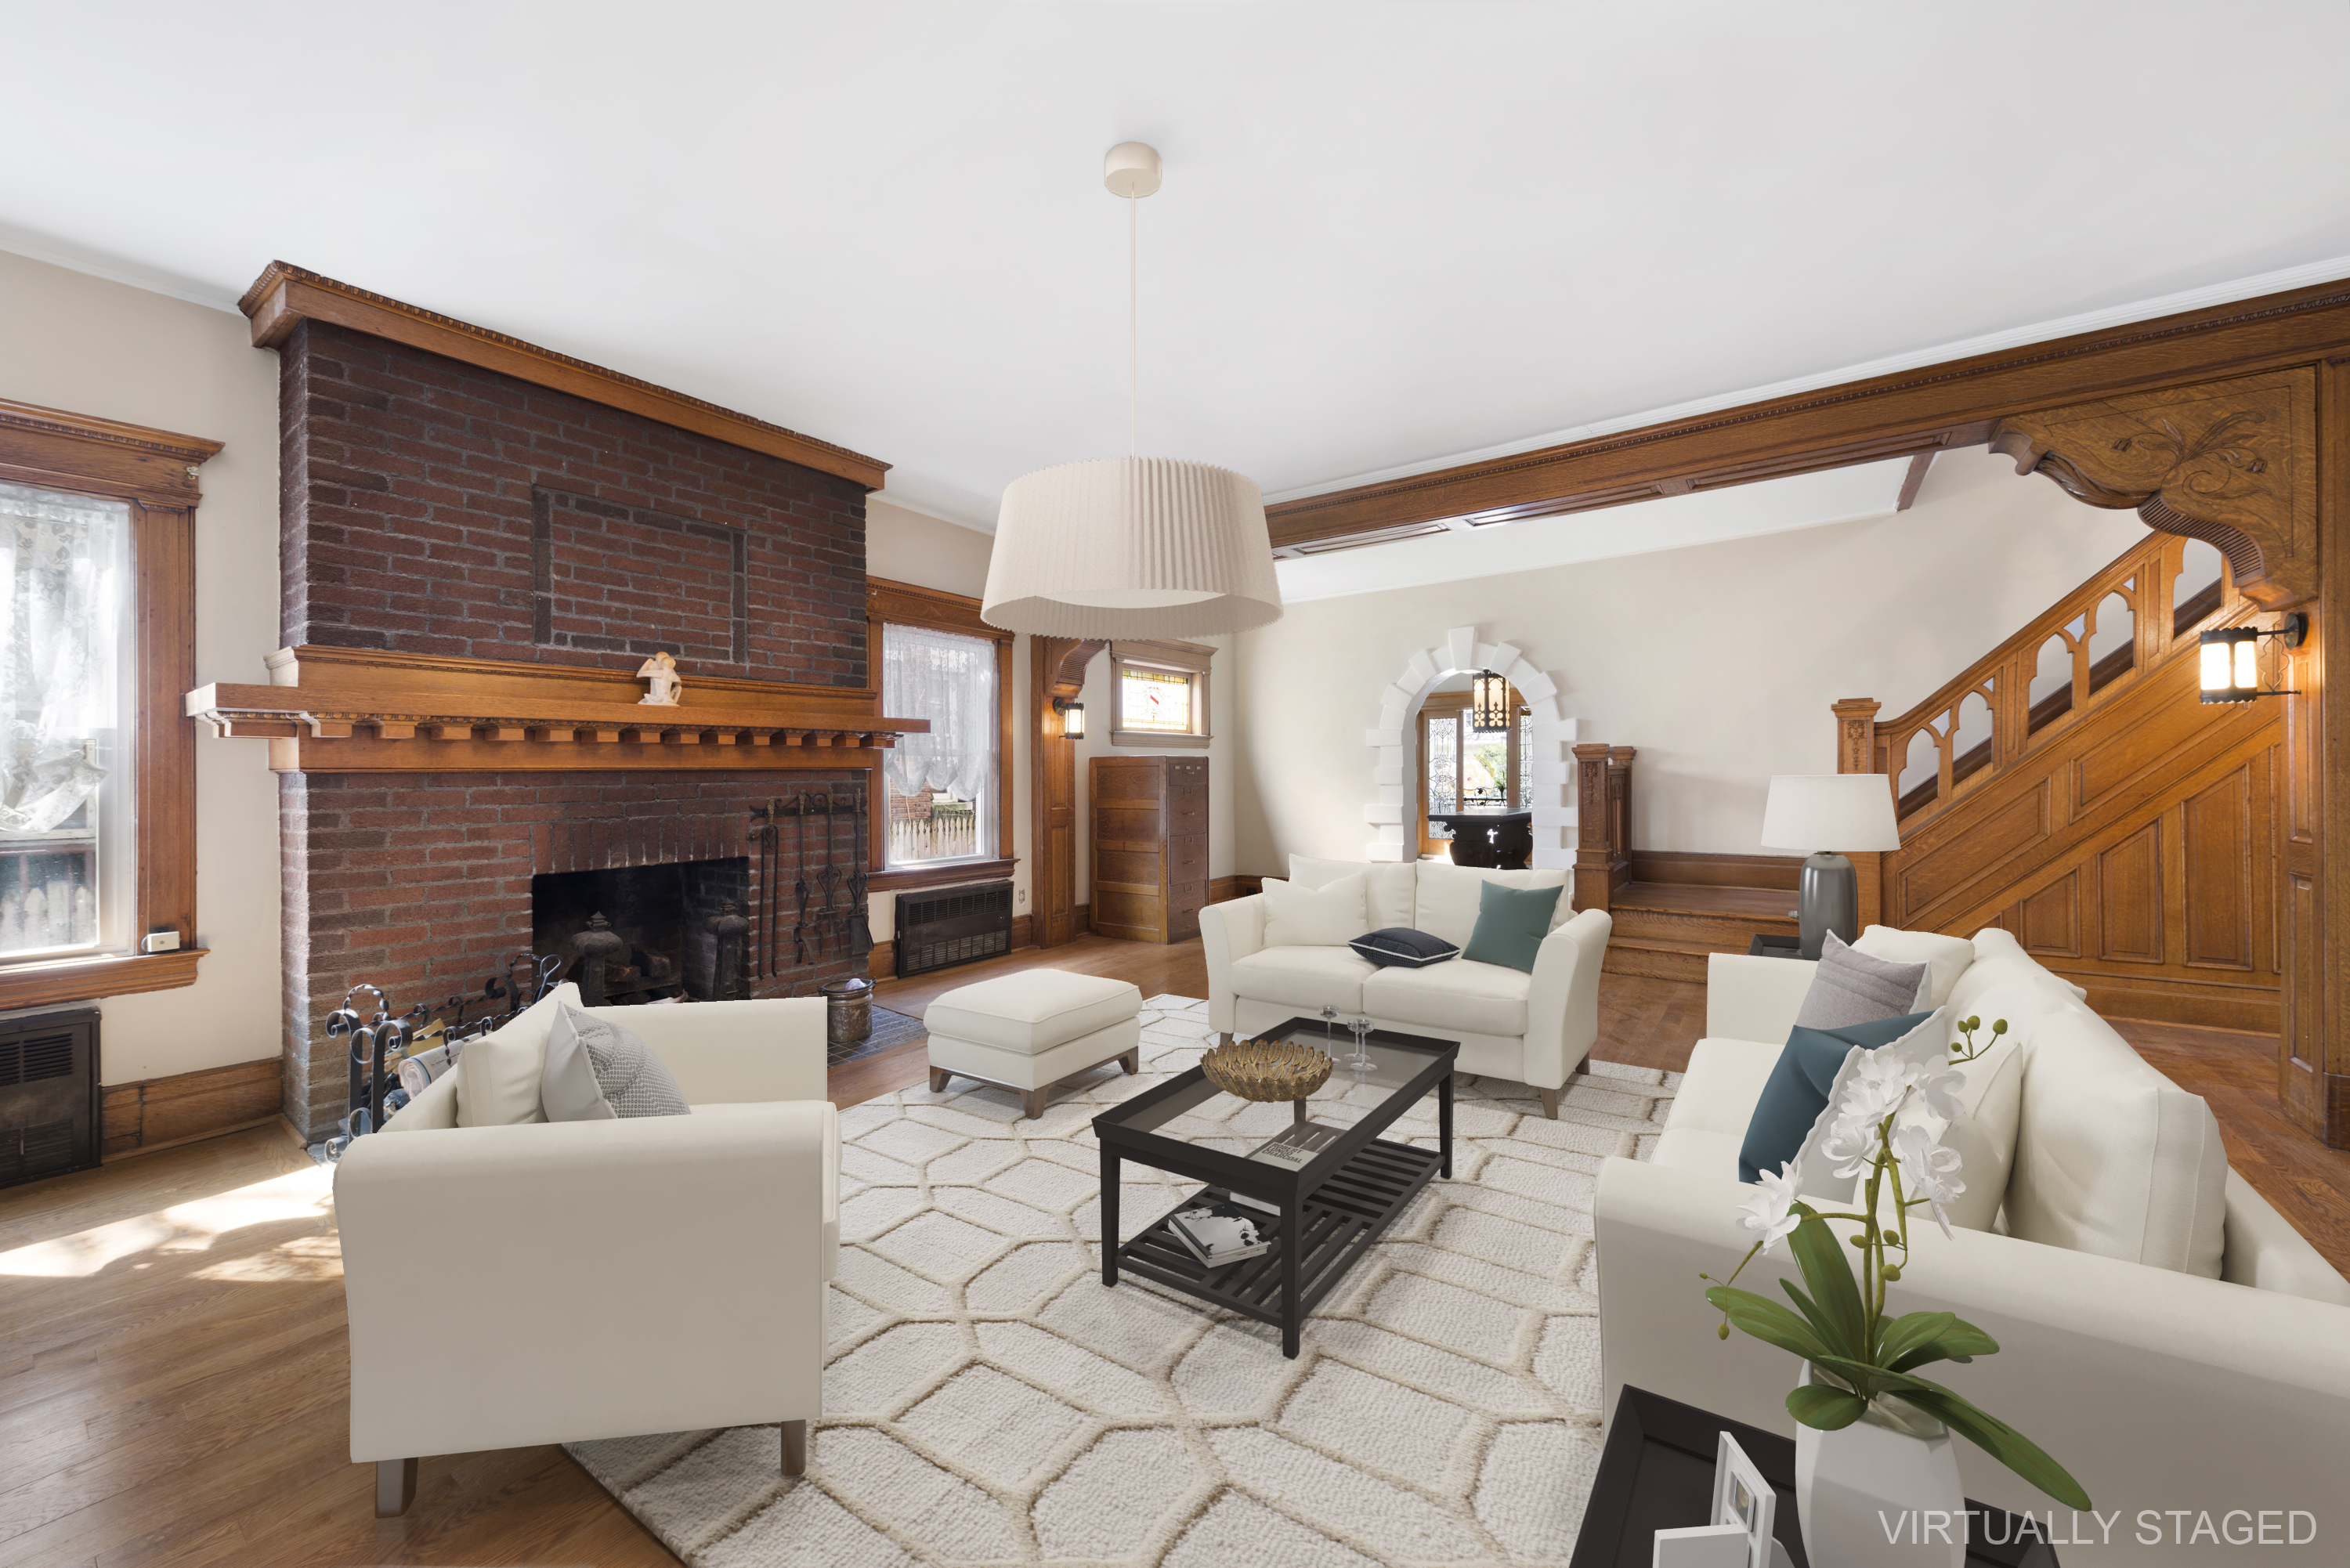 ... Private Driveway And A Huge, Welcoming Living Room With A Wood Burning  Fireplace (one Of Four In The Home), Oak Mantle, Oak Flooring, Wood  Moldings, ...